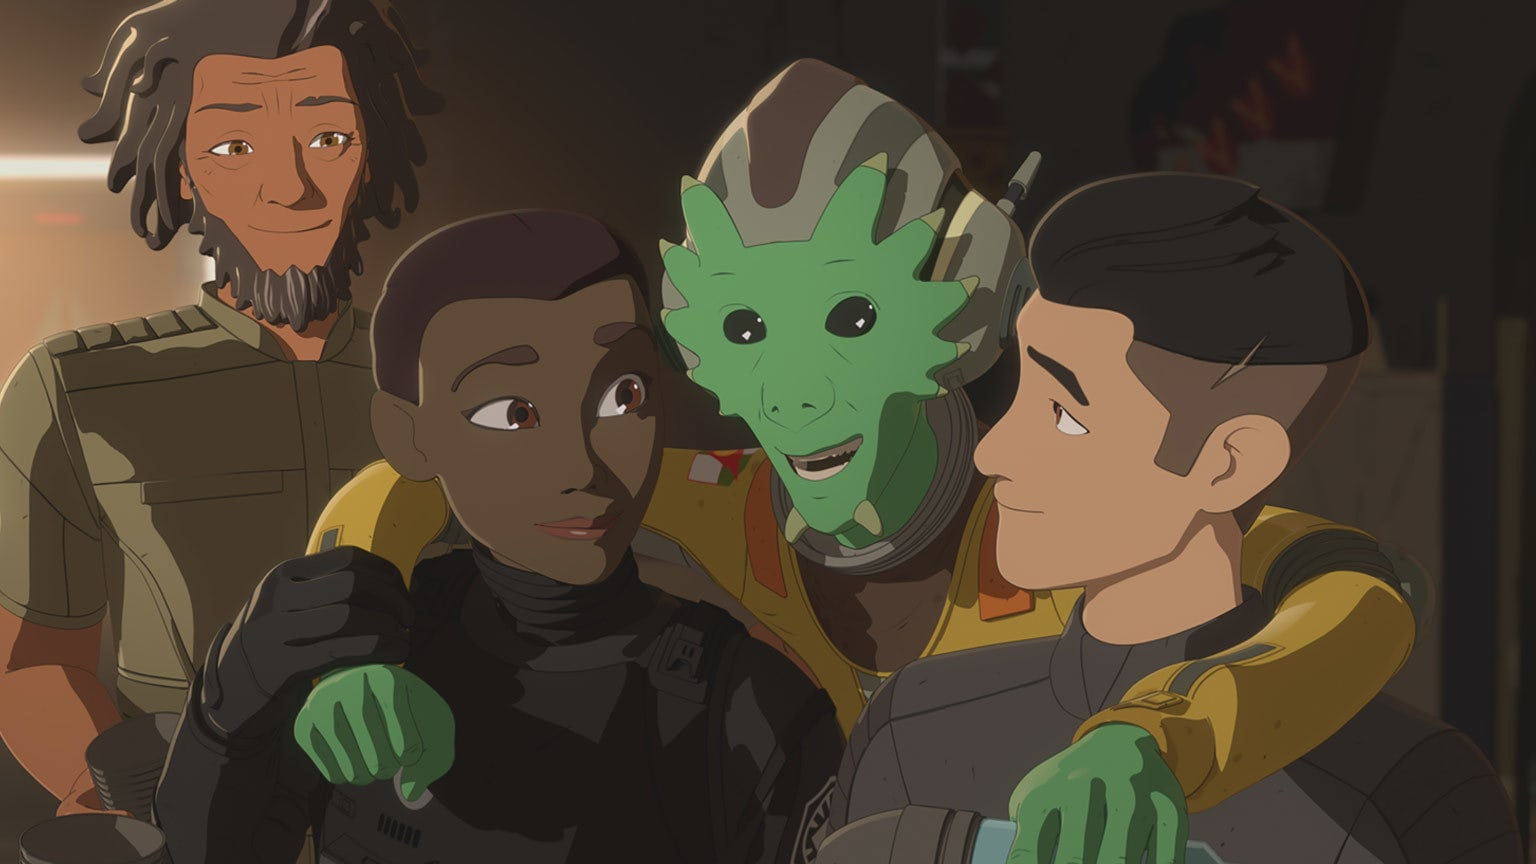 10 Essential Episodes of Star Wars Resistance to Watch on Disney+